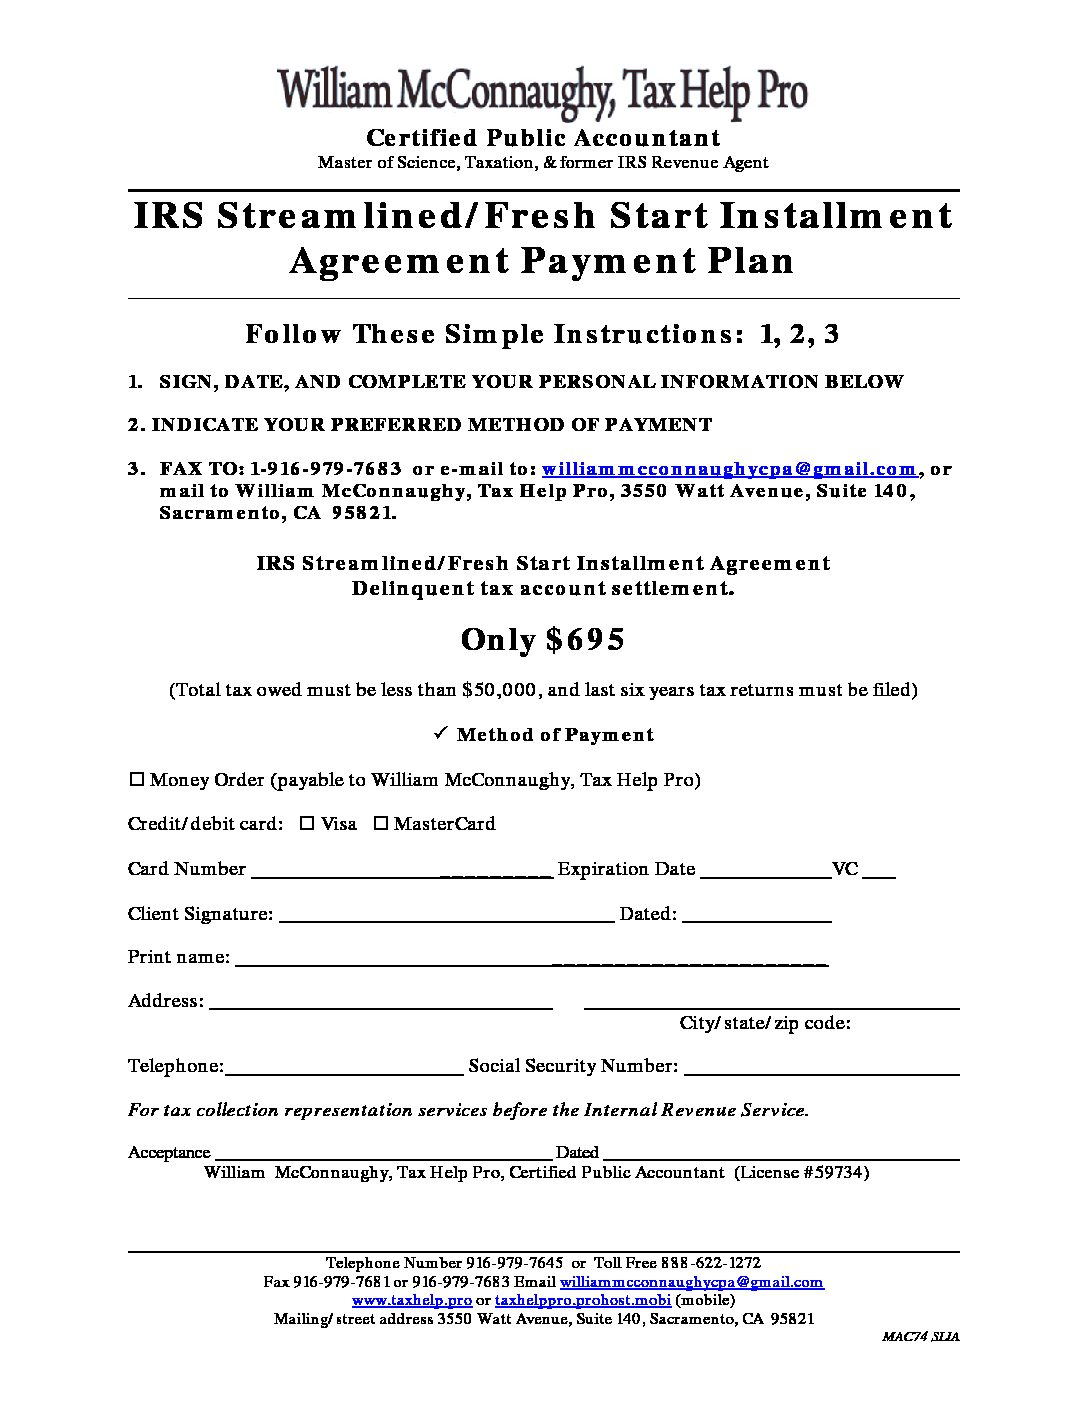 IRS Streamlined Fresh Start Payment Plan